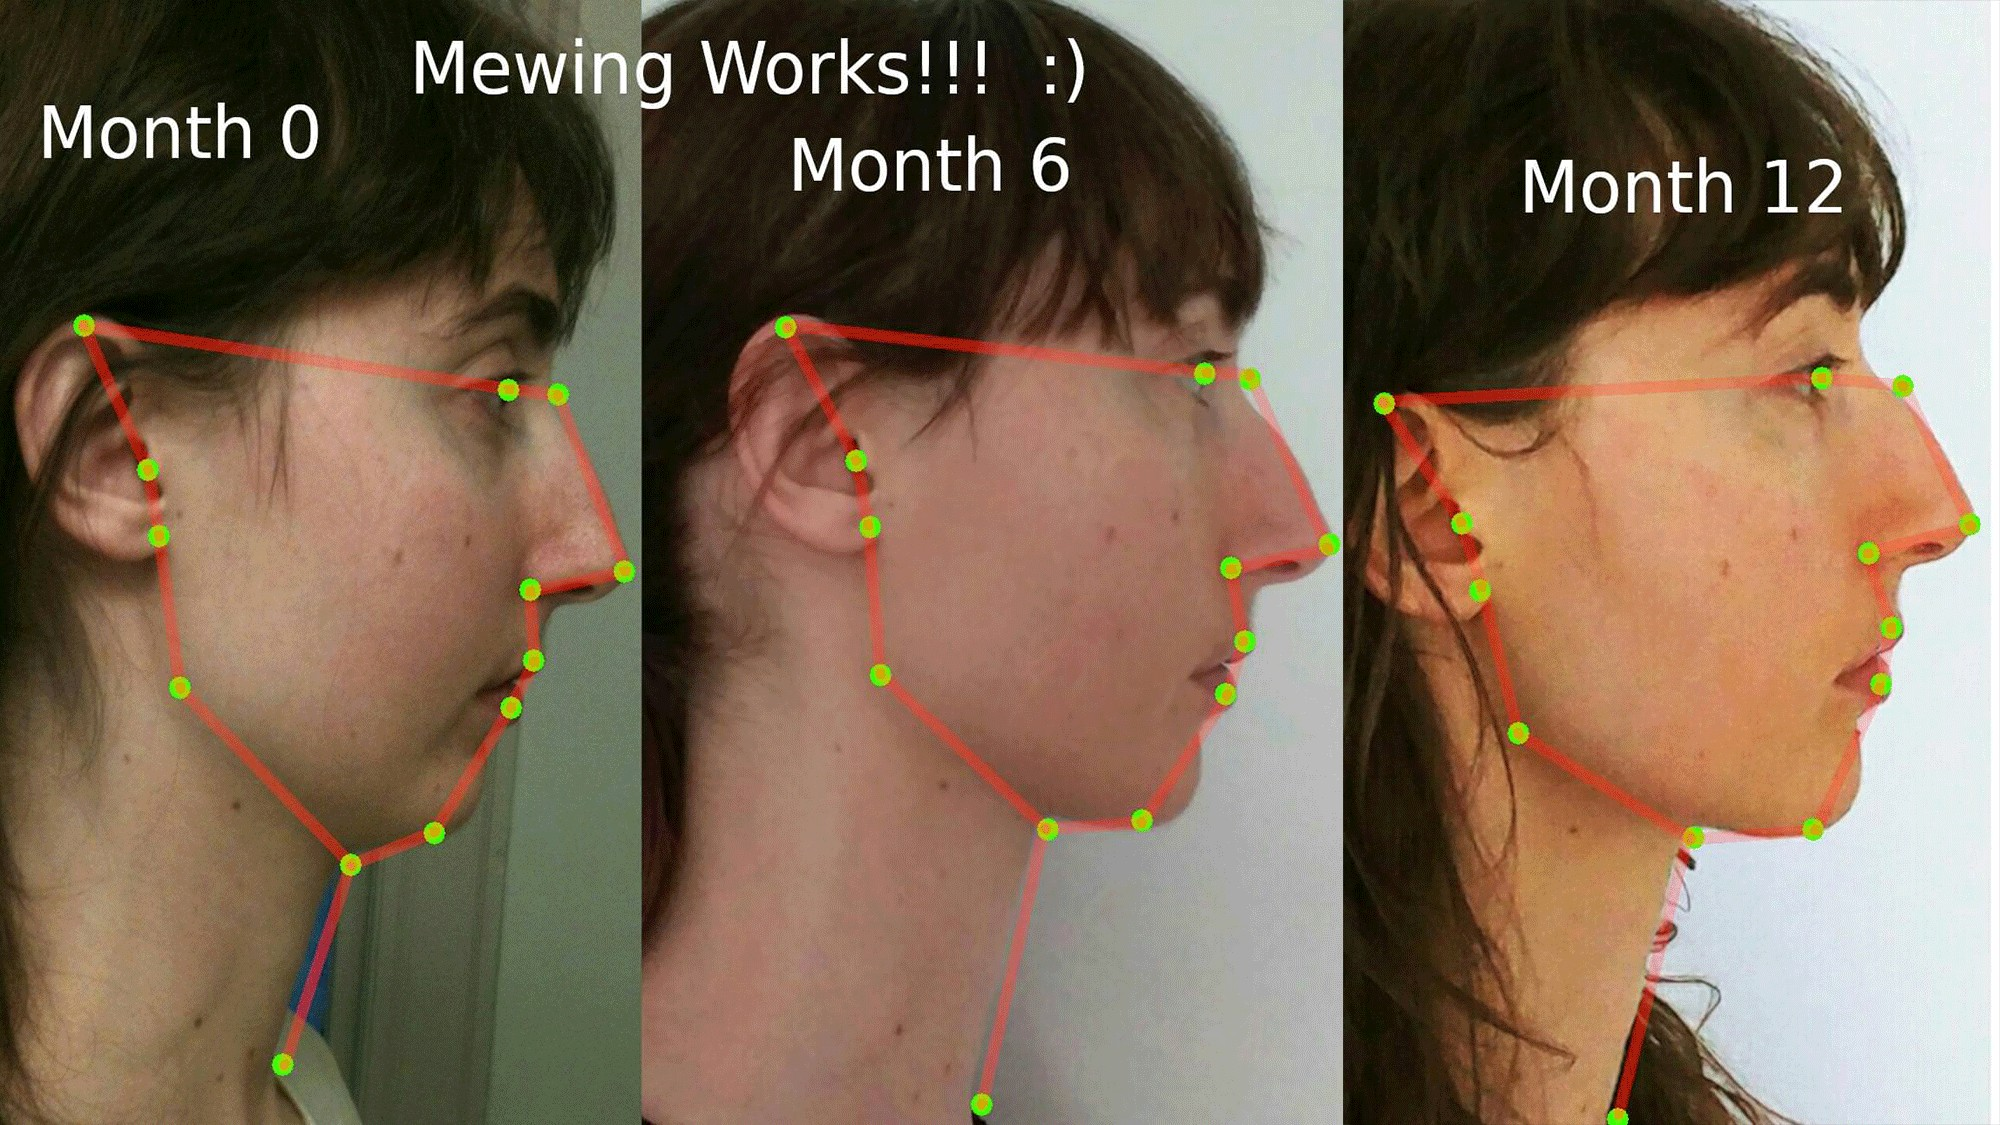 What Is Mewing and Does it Work? - VICE